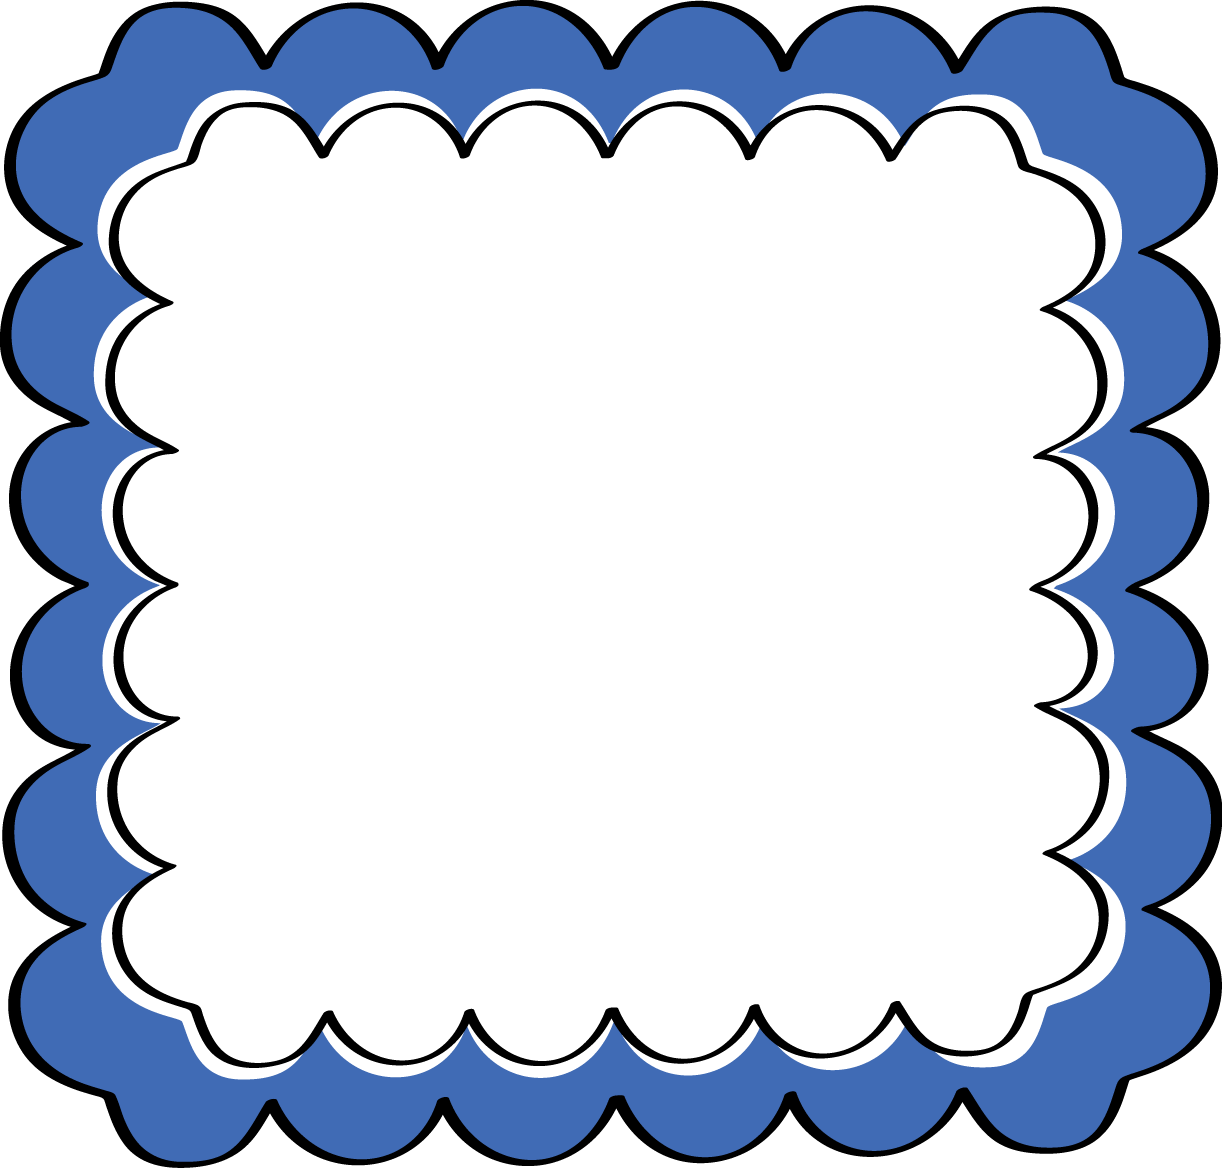 Blue scalloped frame free clipart panda free clipart images